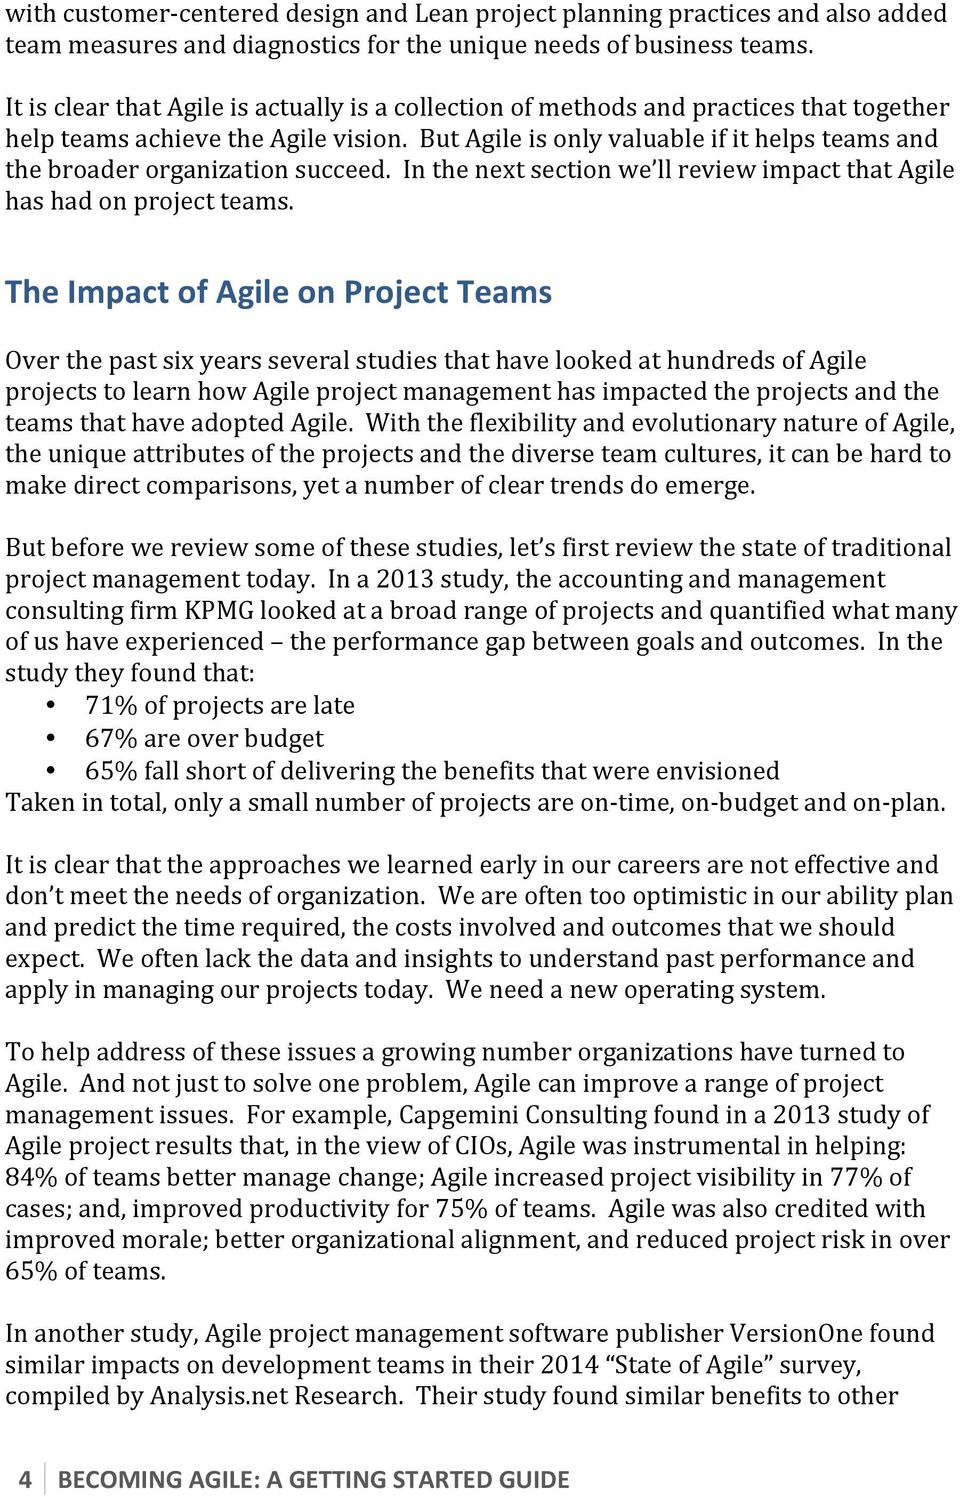 But Agile is only valuable if it helps teams and the broader organization succeed. In the next section we ll review impact that Agile has had on project teams.